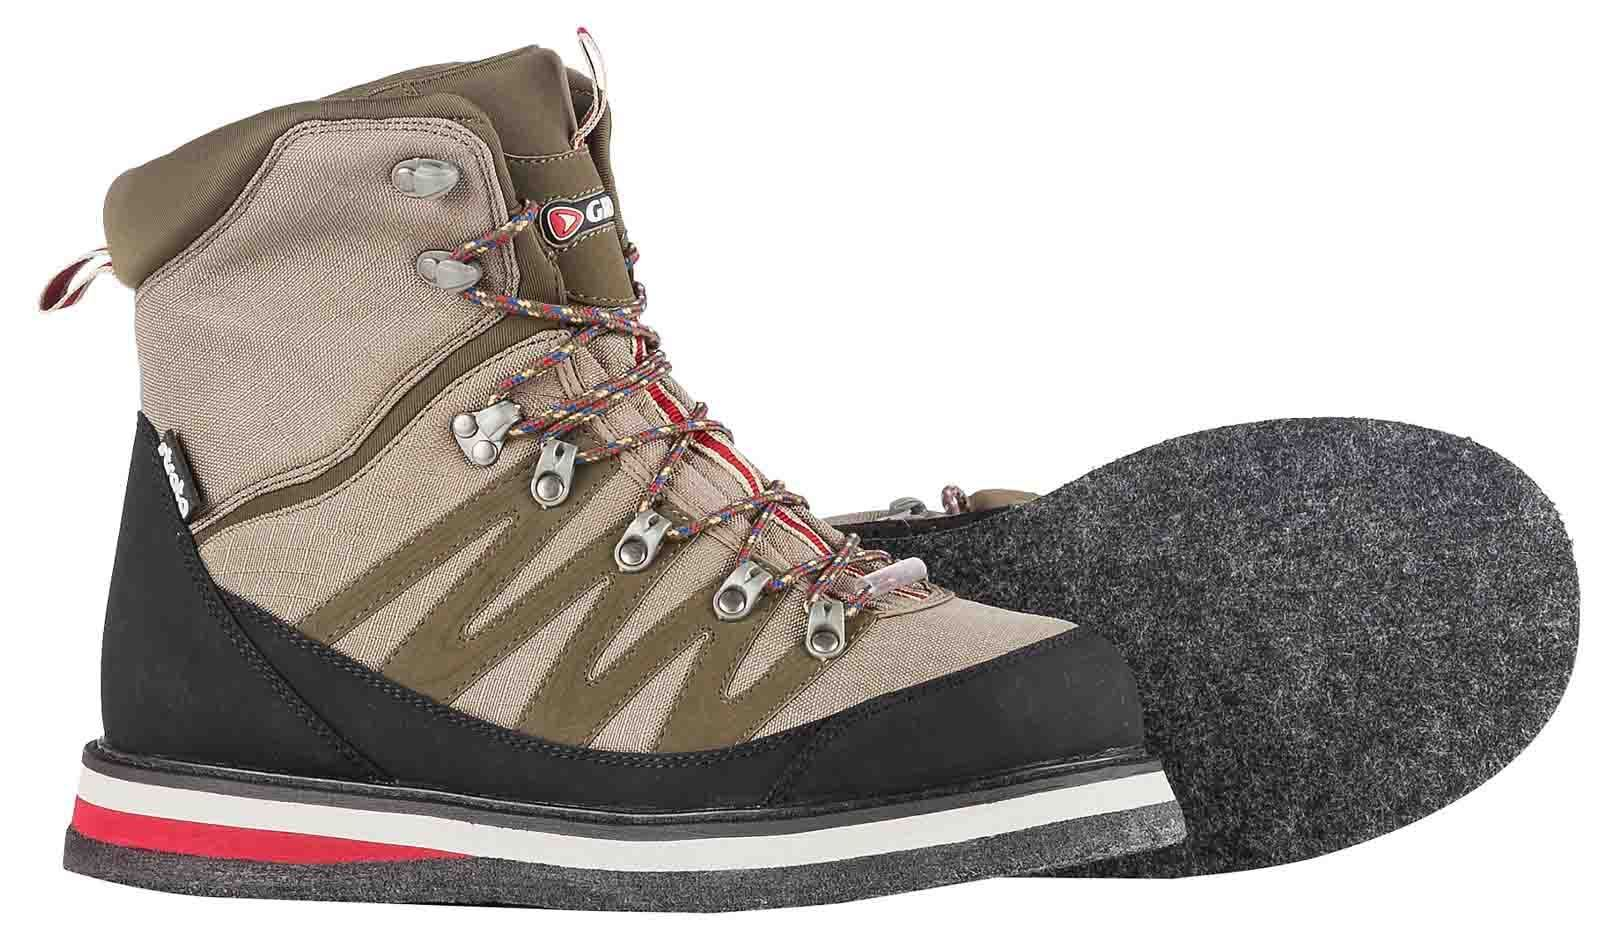 Greys Strata CT Felt Sole Fly Wading Fishing Boots Plus Studs - All Sizes